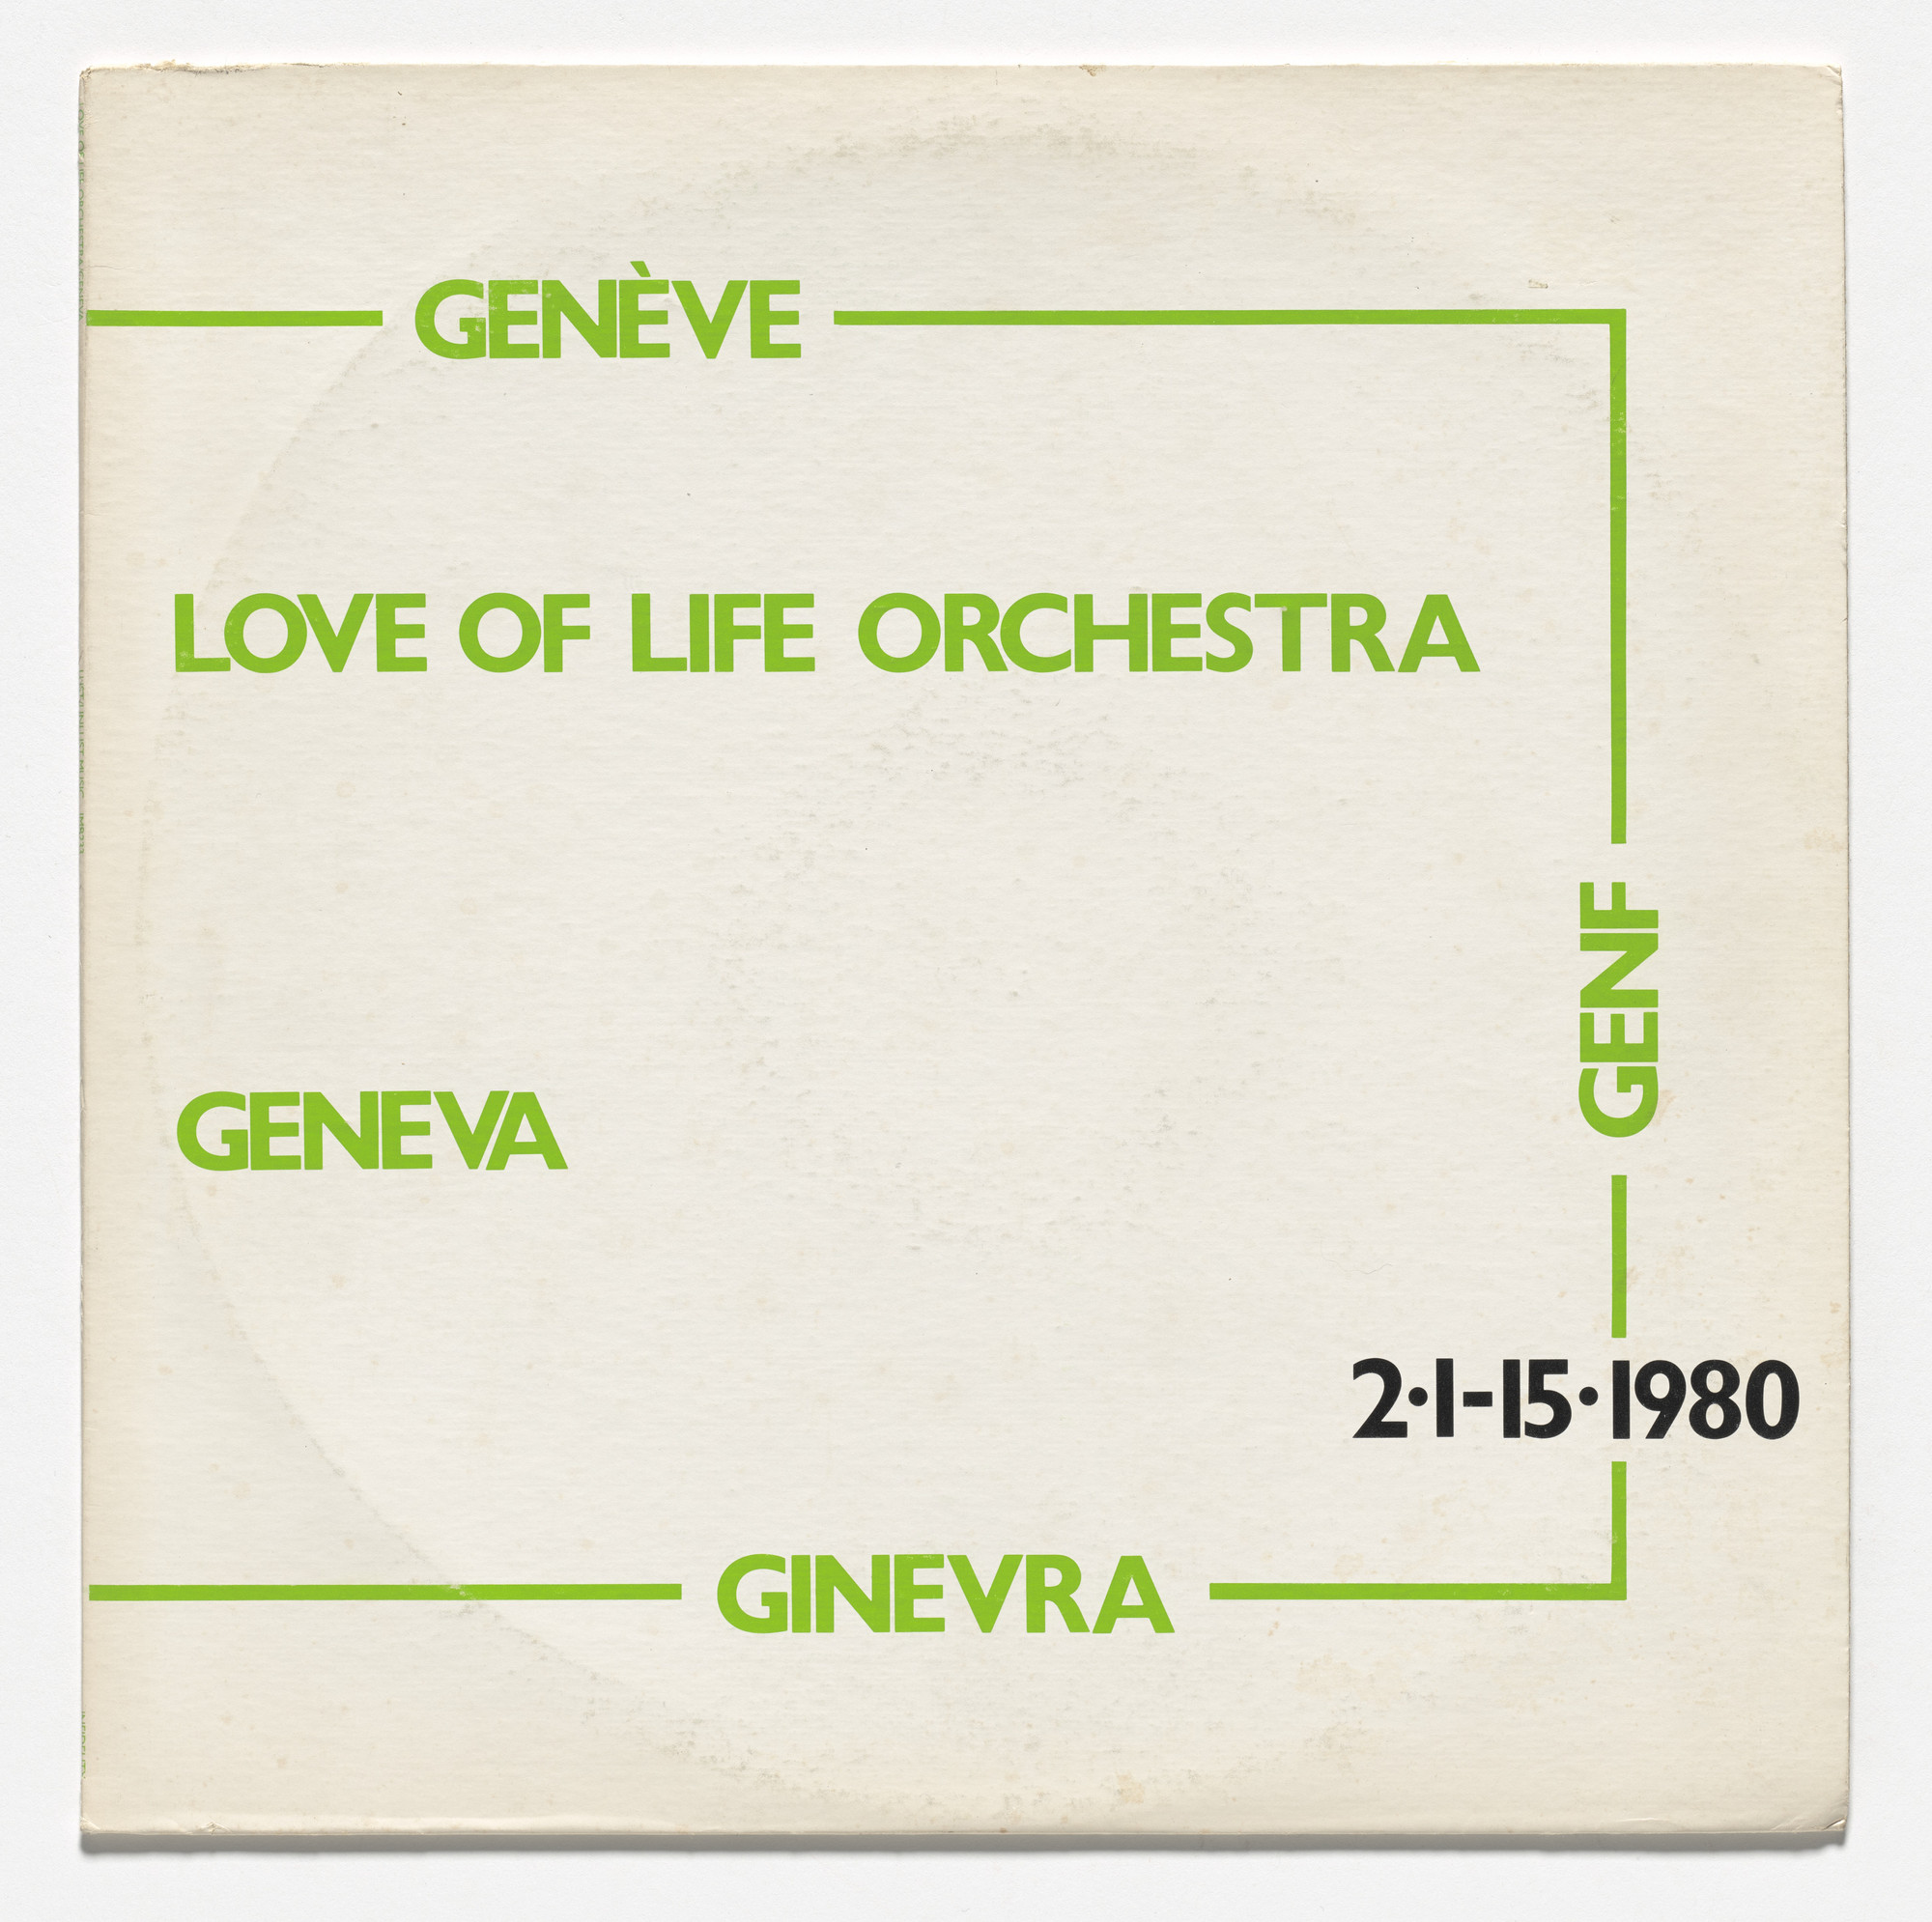 Love of Life Orchestra, Lawrence Weiner. Geneva. 1980